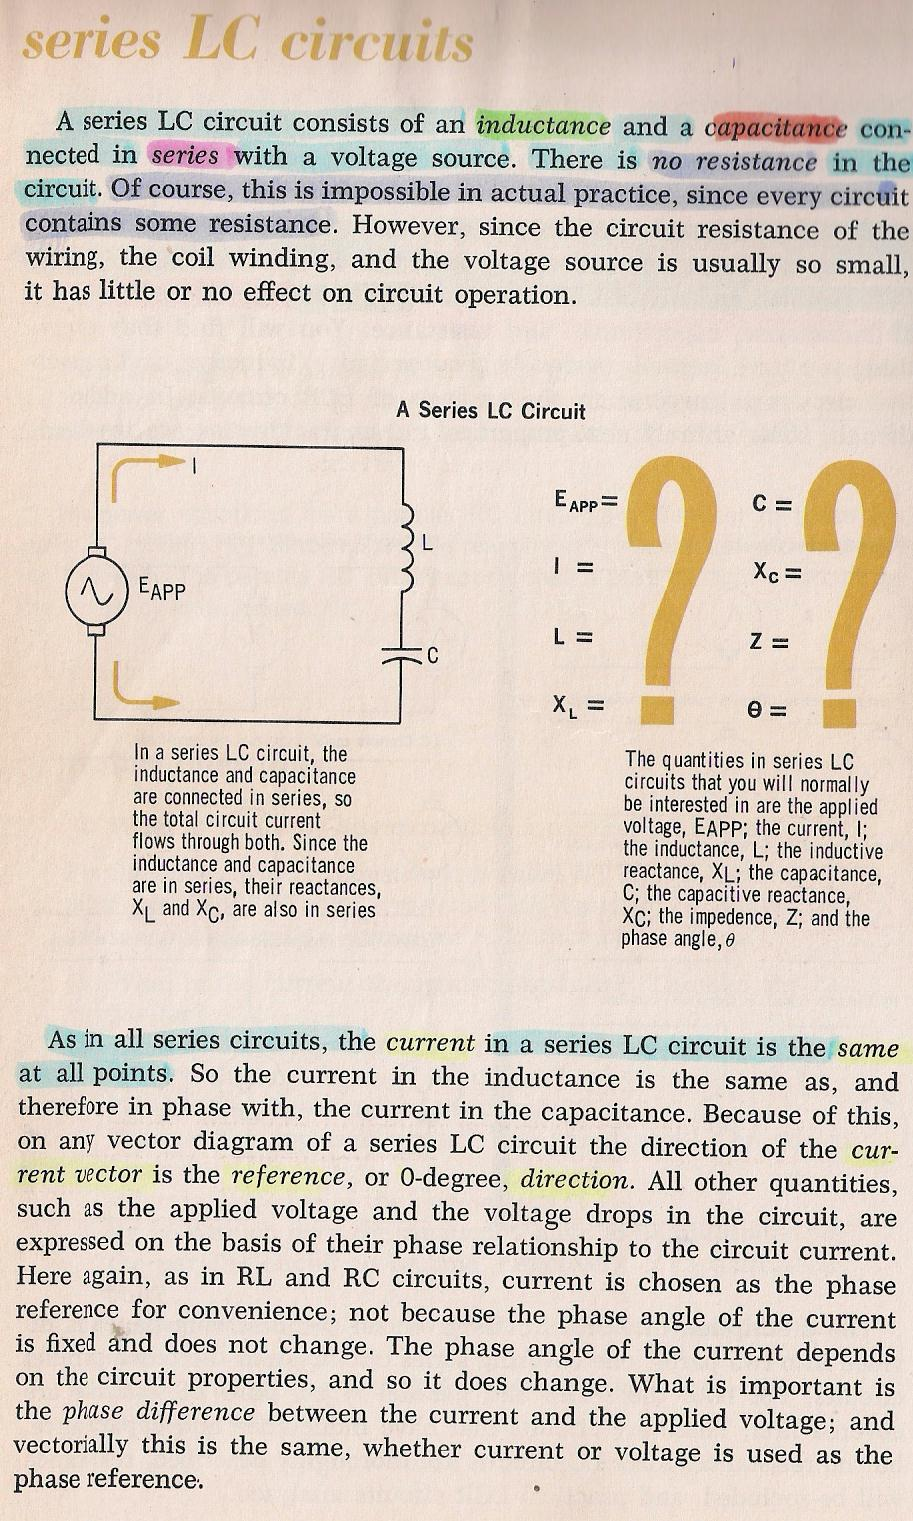 Rlc Circuits 001 Vectors Introduction By Larry E Gugle K4rfe Ac Circuit Inductance And Capacitance Lcr In Series 040 Lc